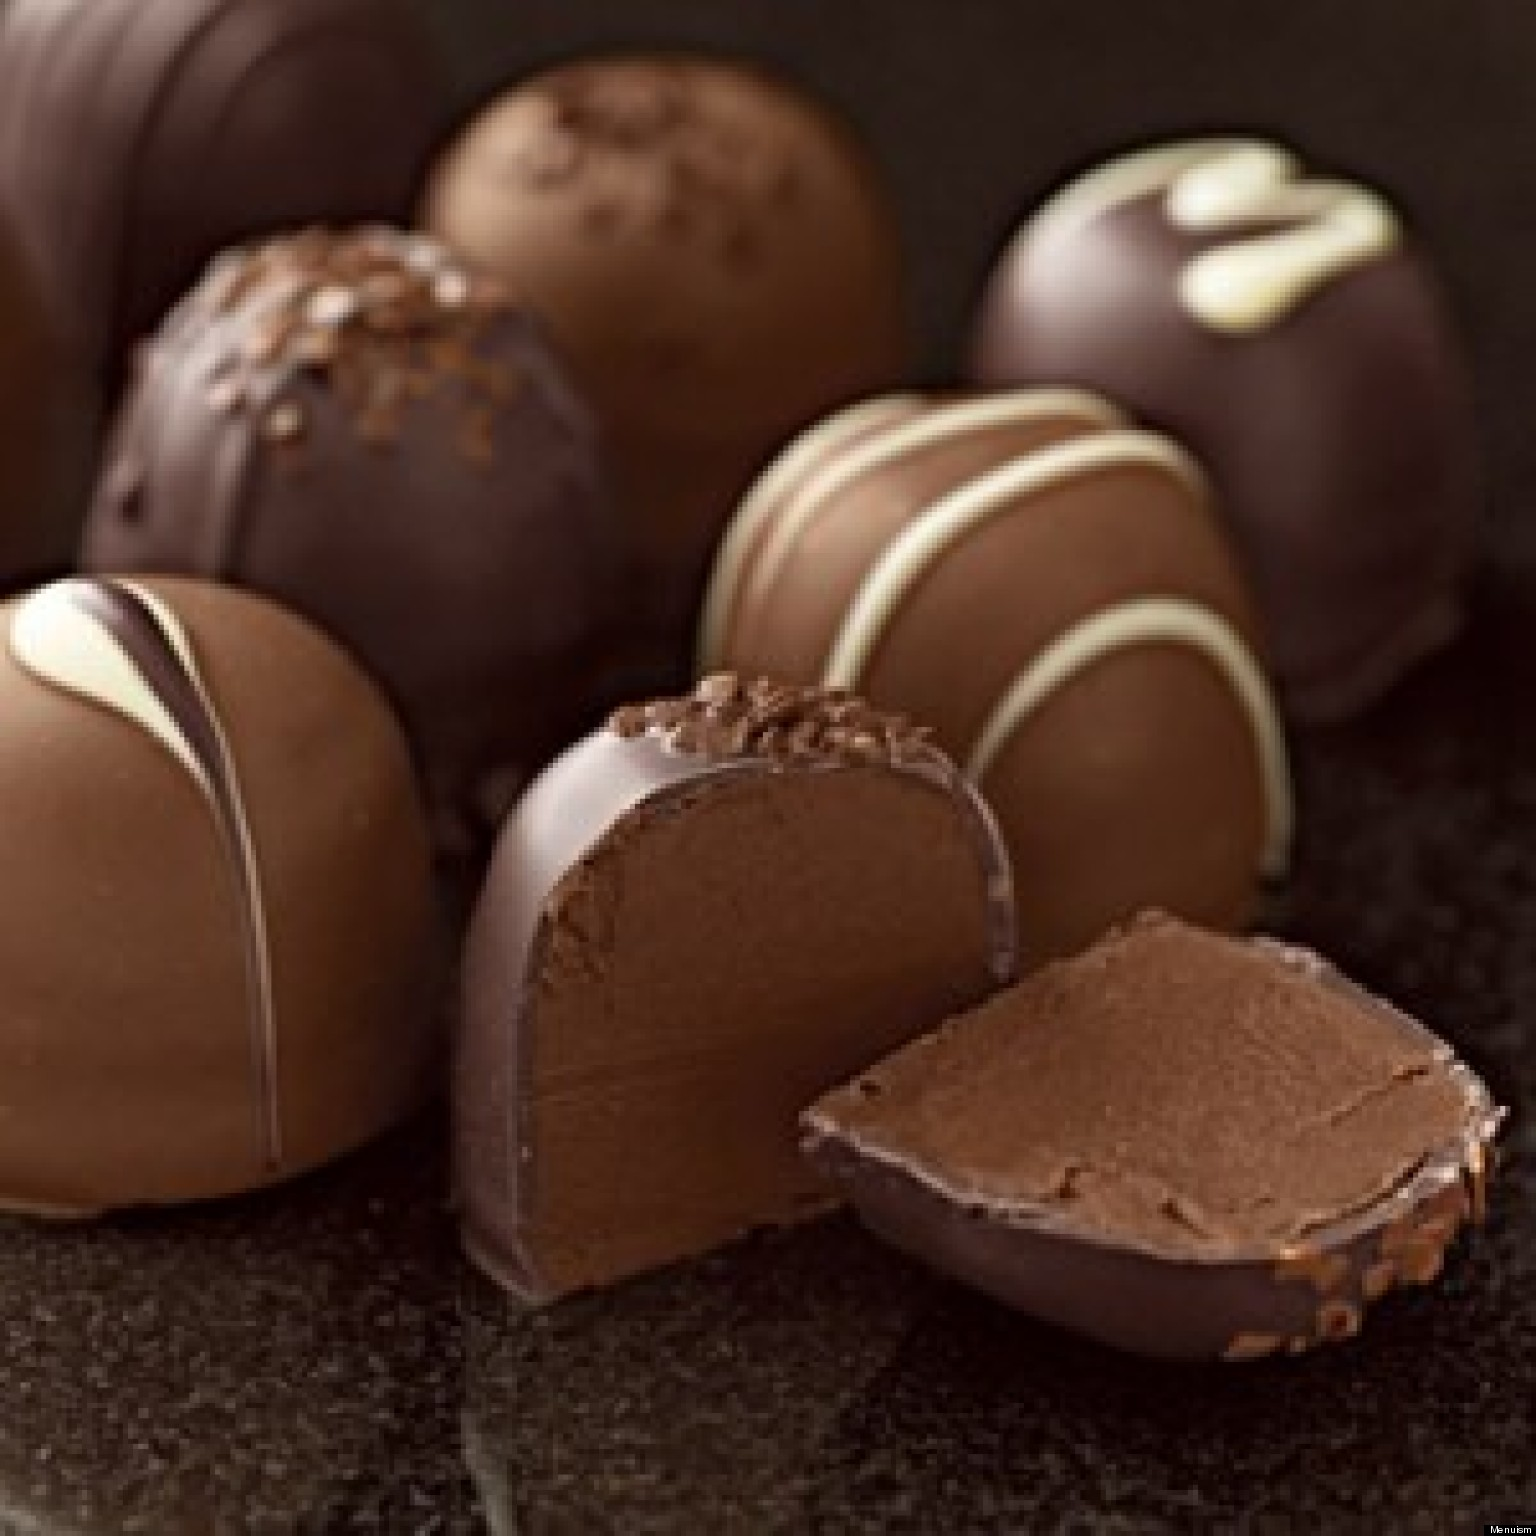 Will The Real Chocolate Truffle Please Stand Up